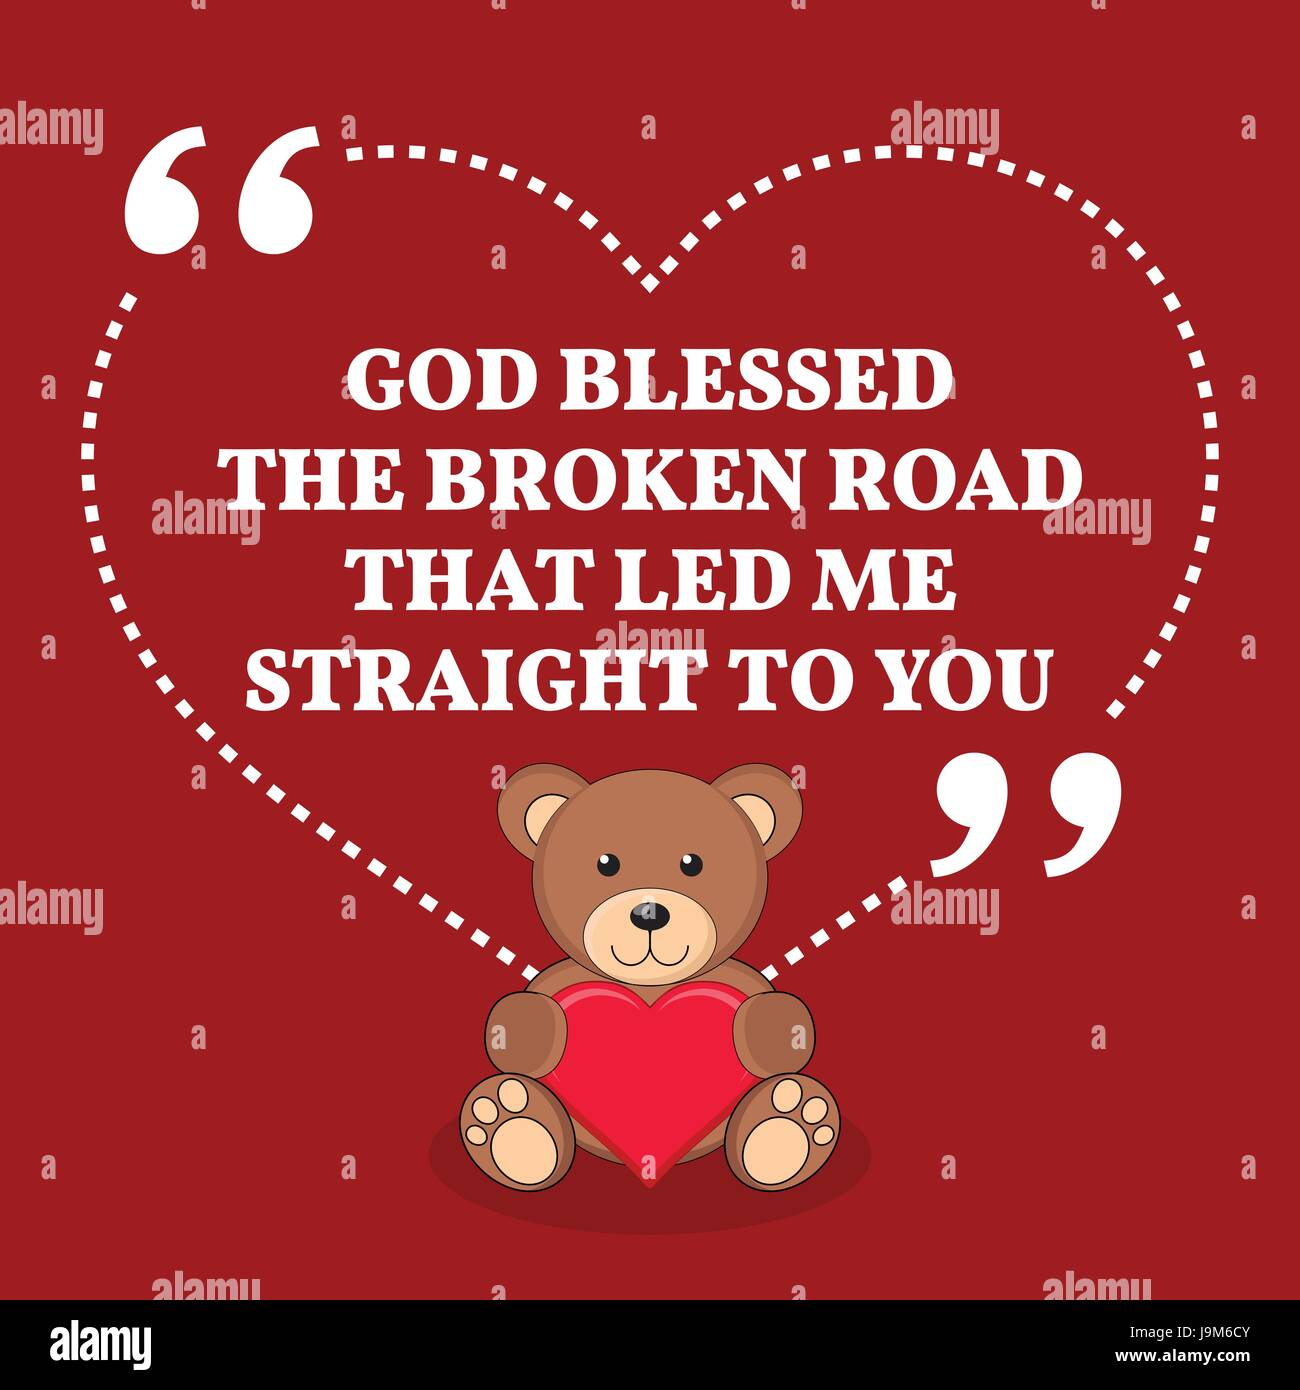 Inspirational love marriage quote God blessed the broken road that led me straight to you Simple trendy design